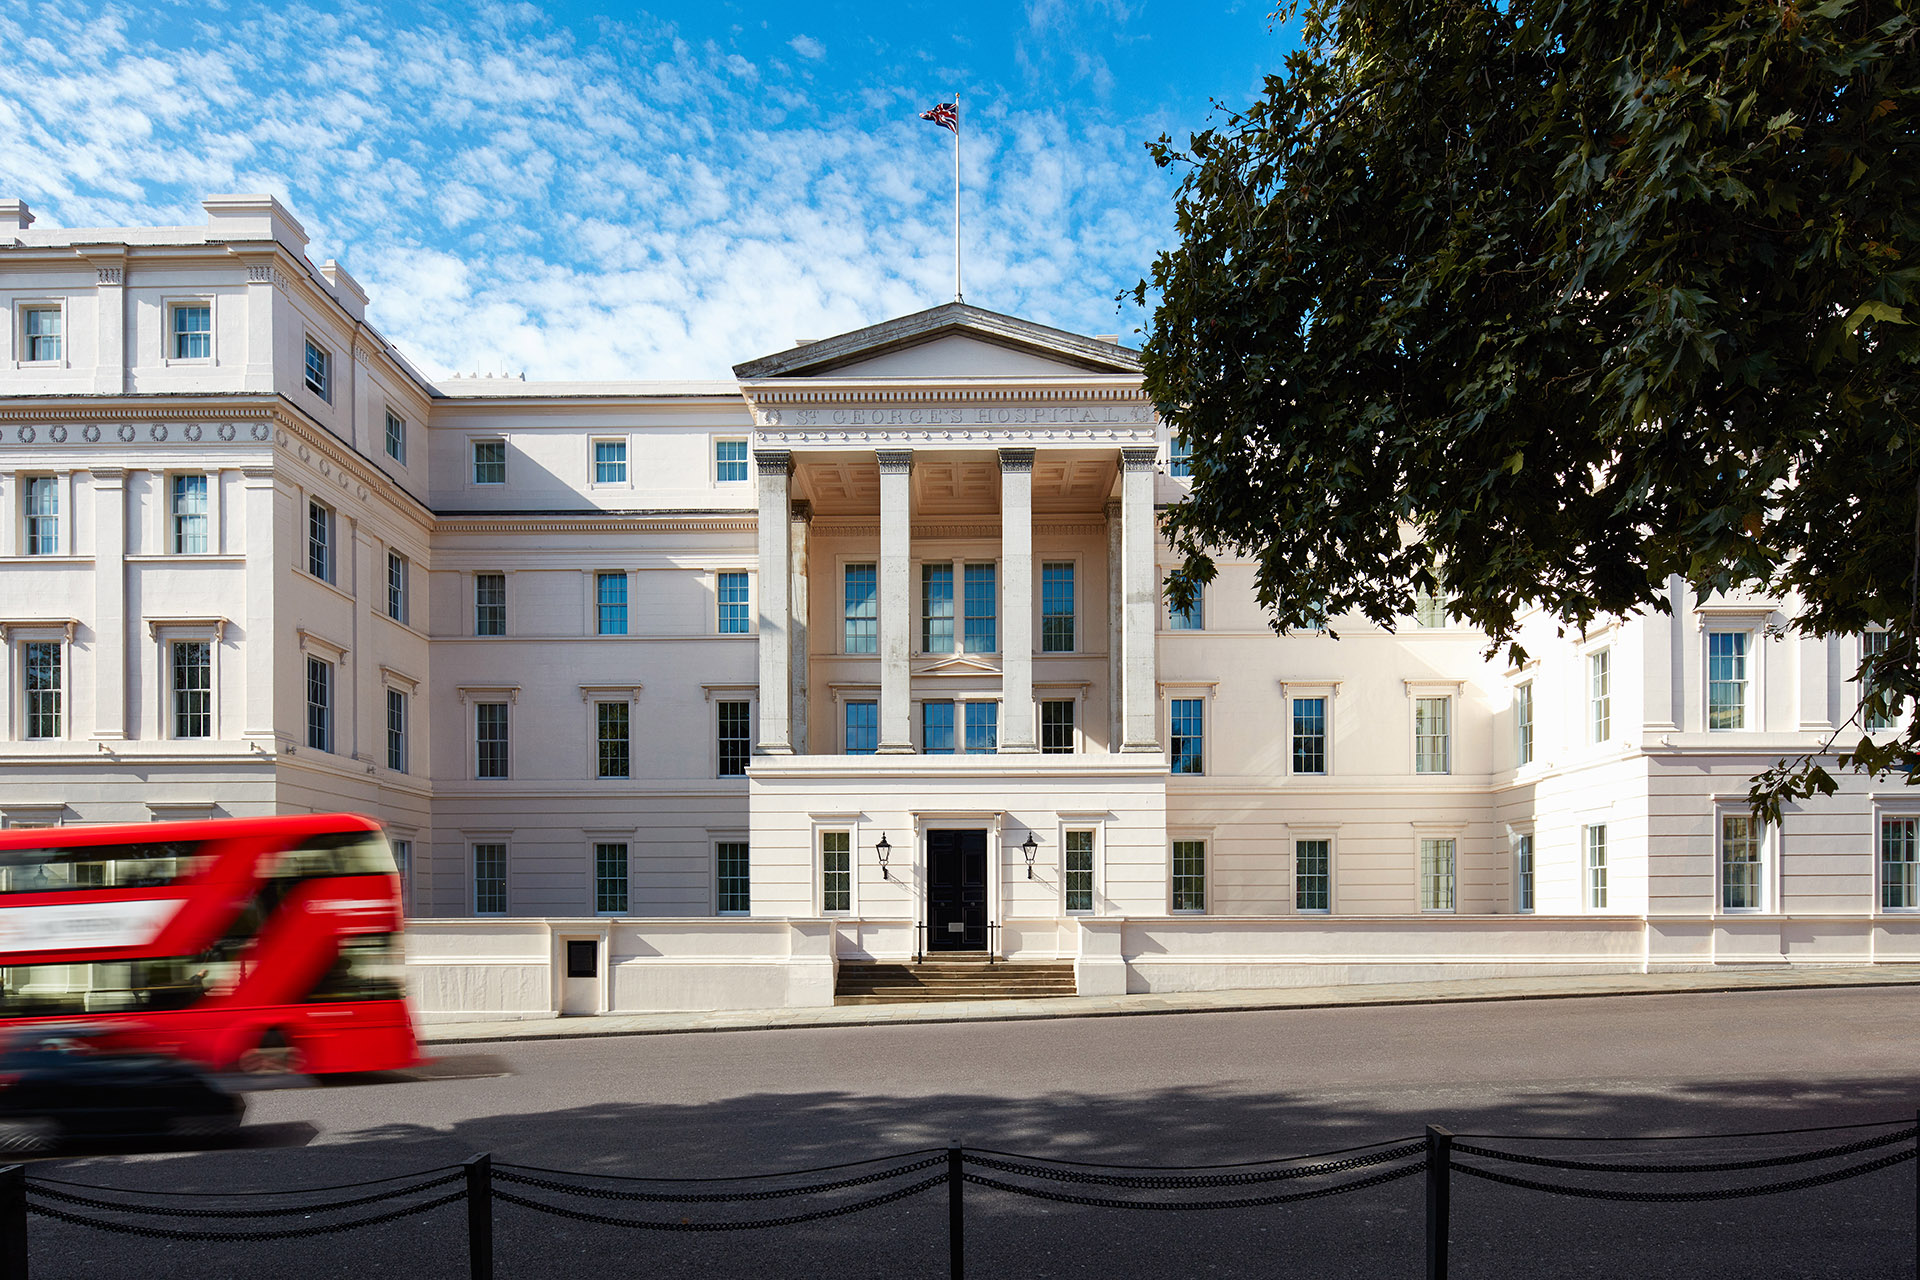 The Lanesborough Hotel